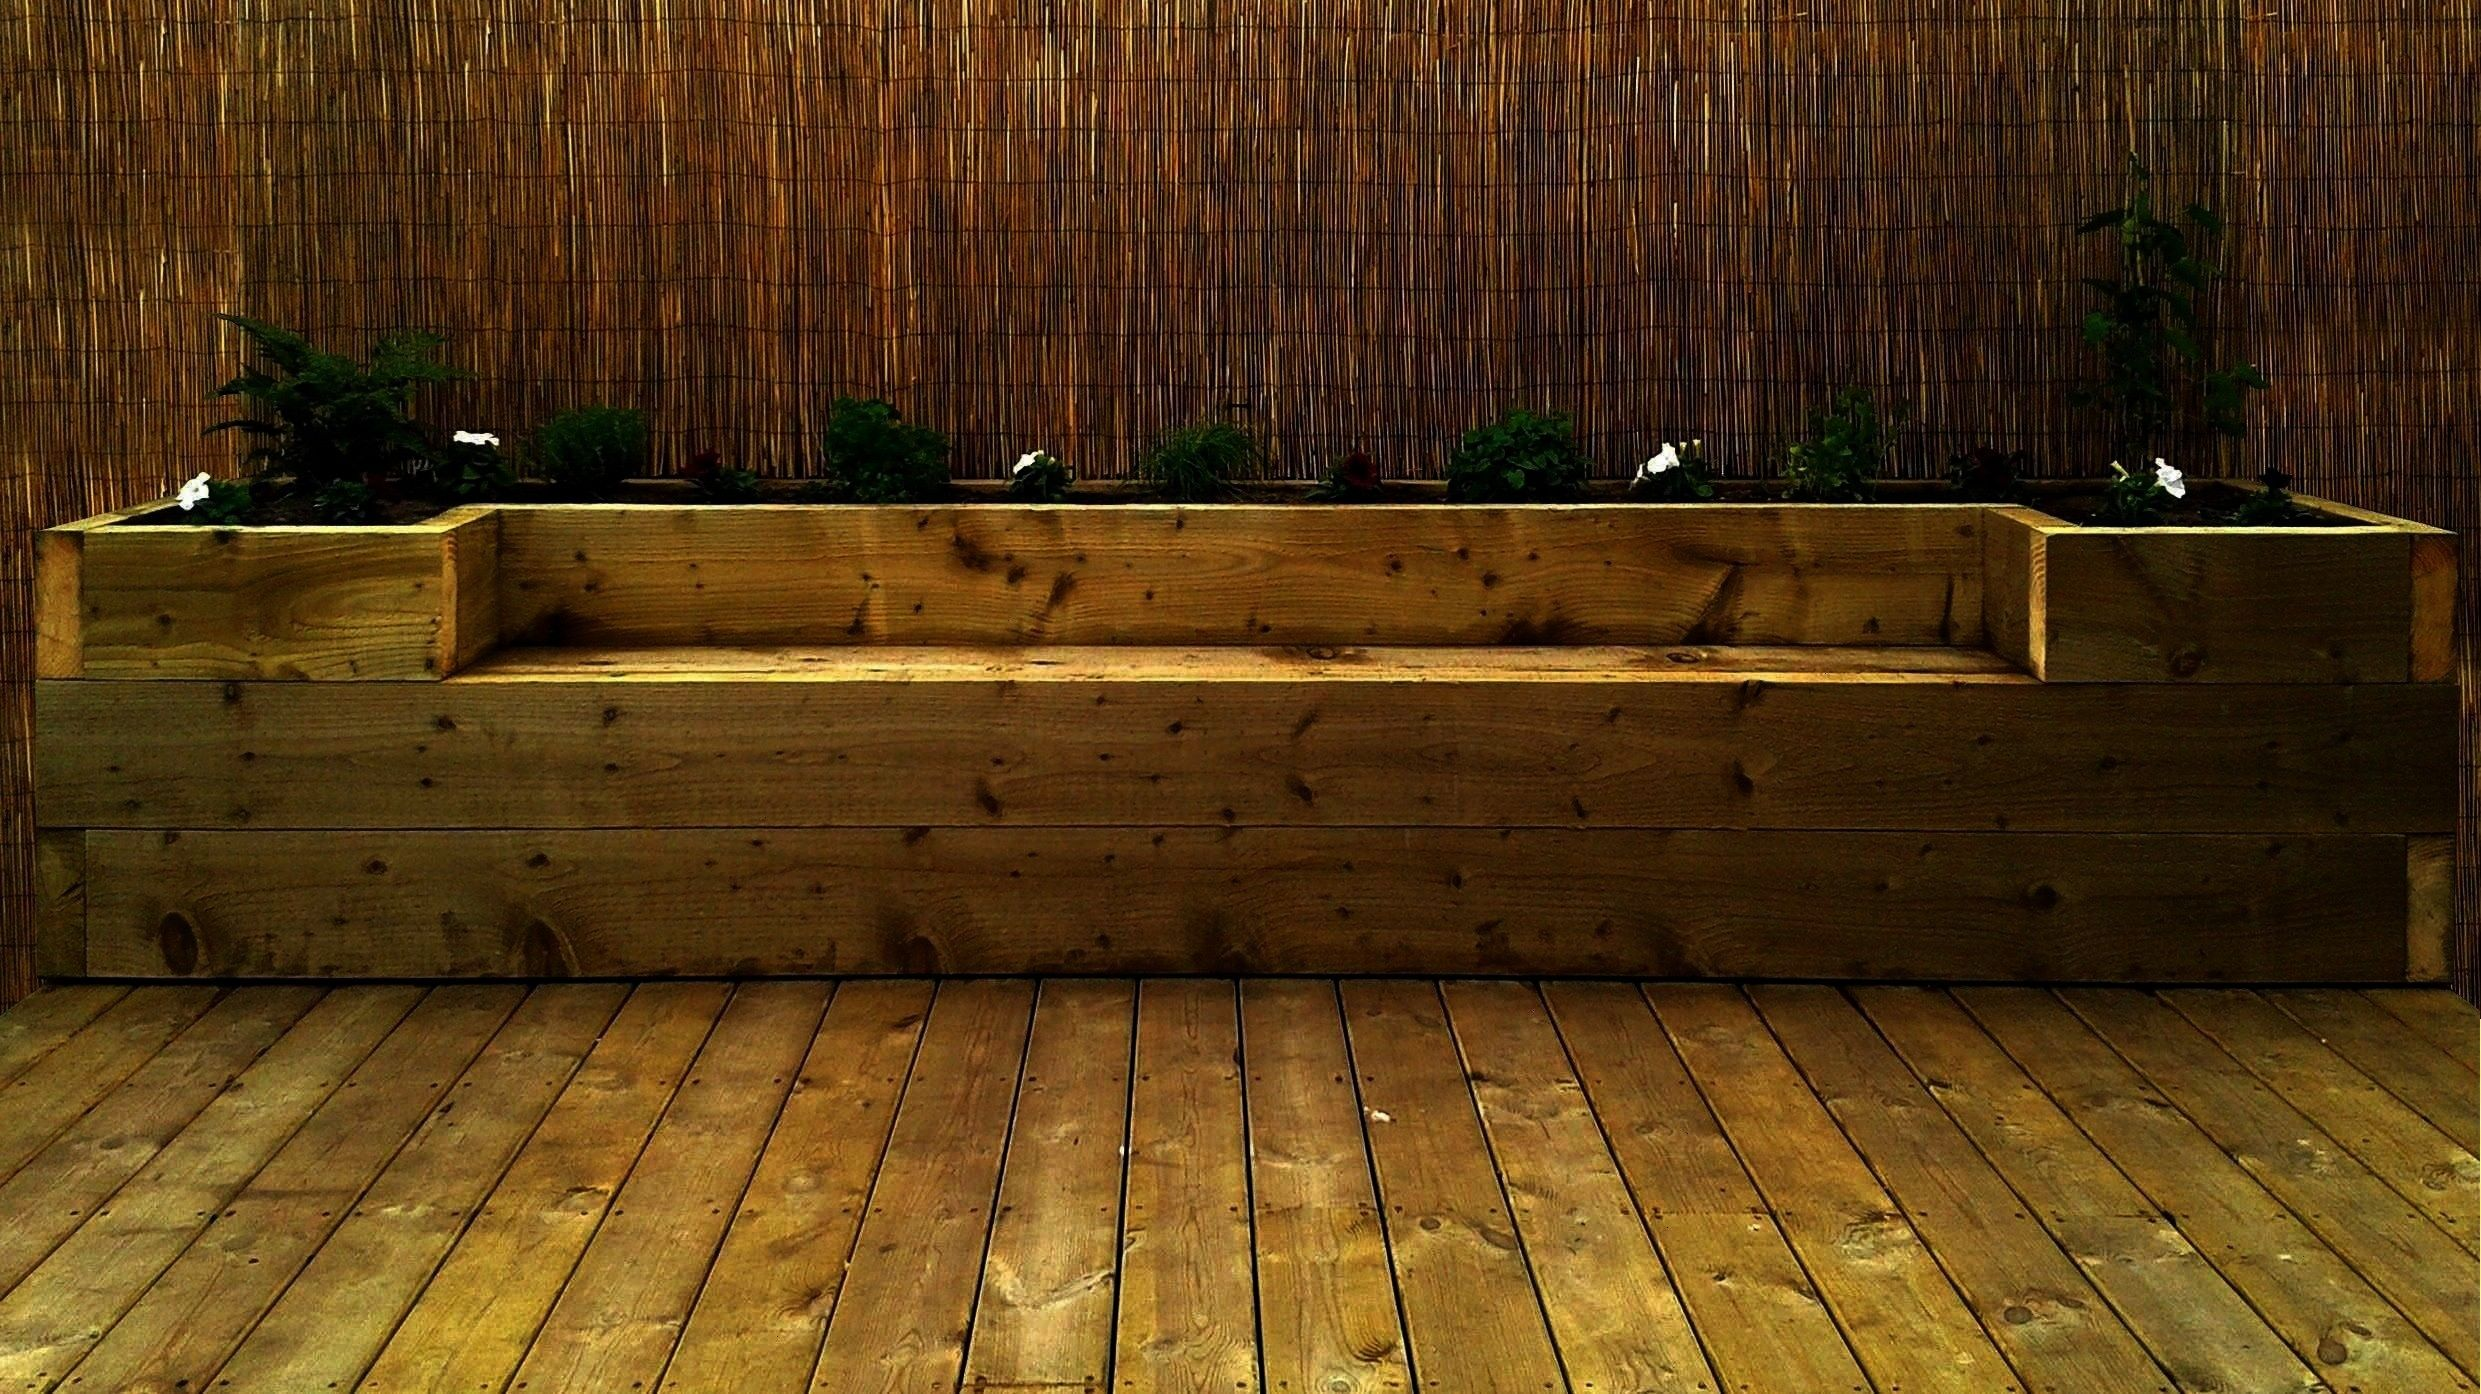 bed and seat with sleepers  Google Search  how to make raised garden bed and seat with sleepers  Google Search how to make raised garden bed and seat with sleepers  Googl...